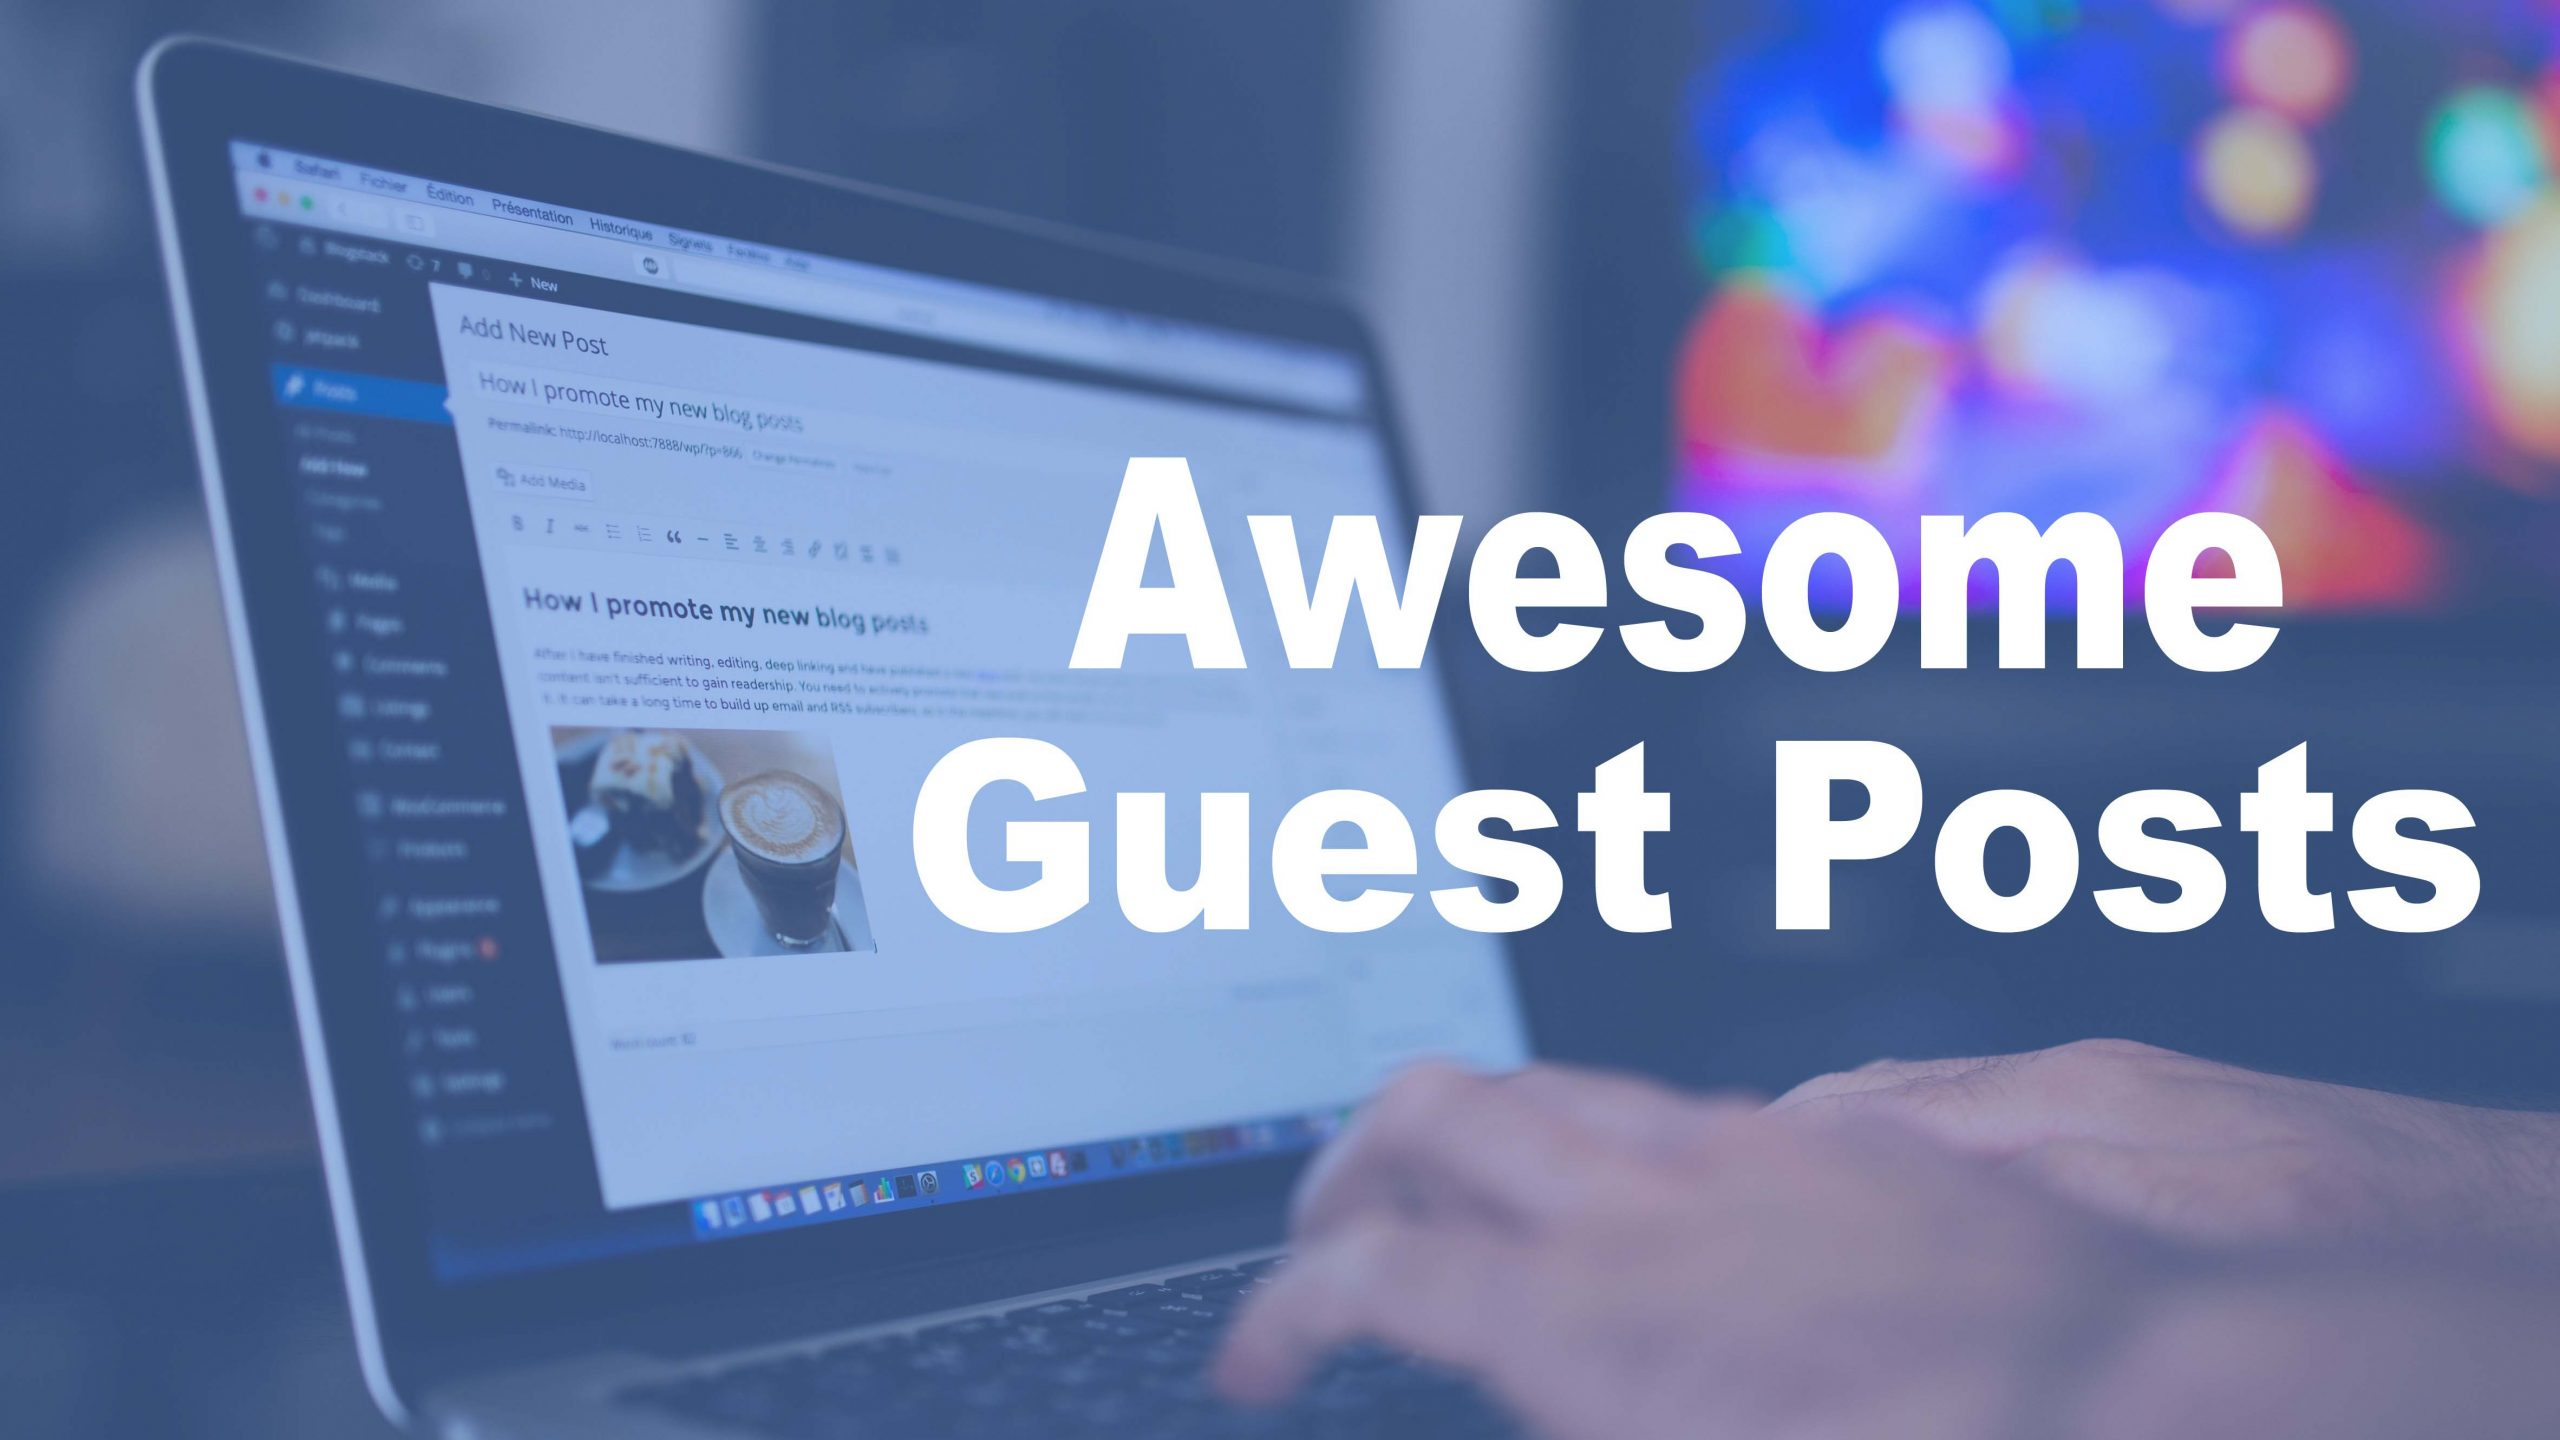 Awesome Guest Posts